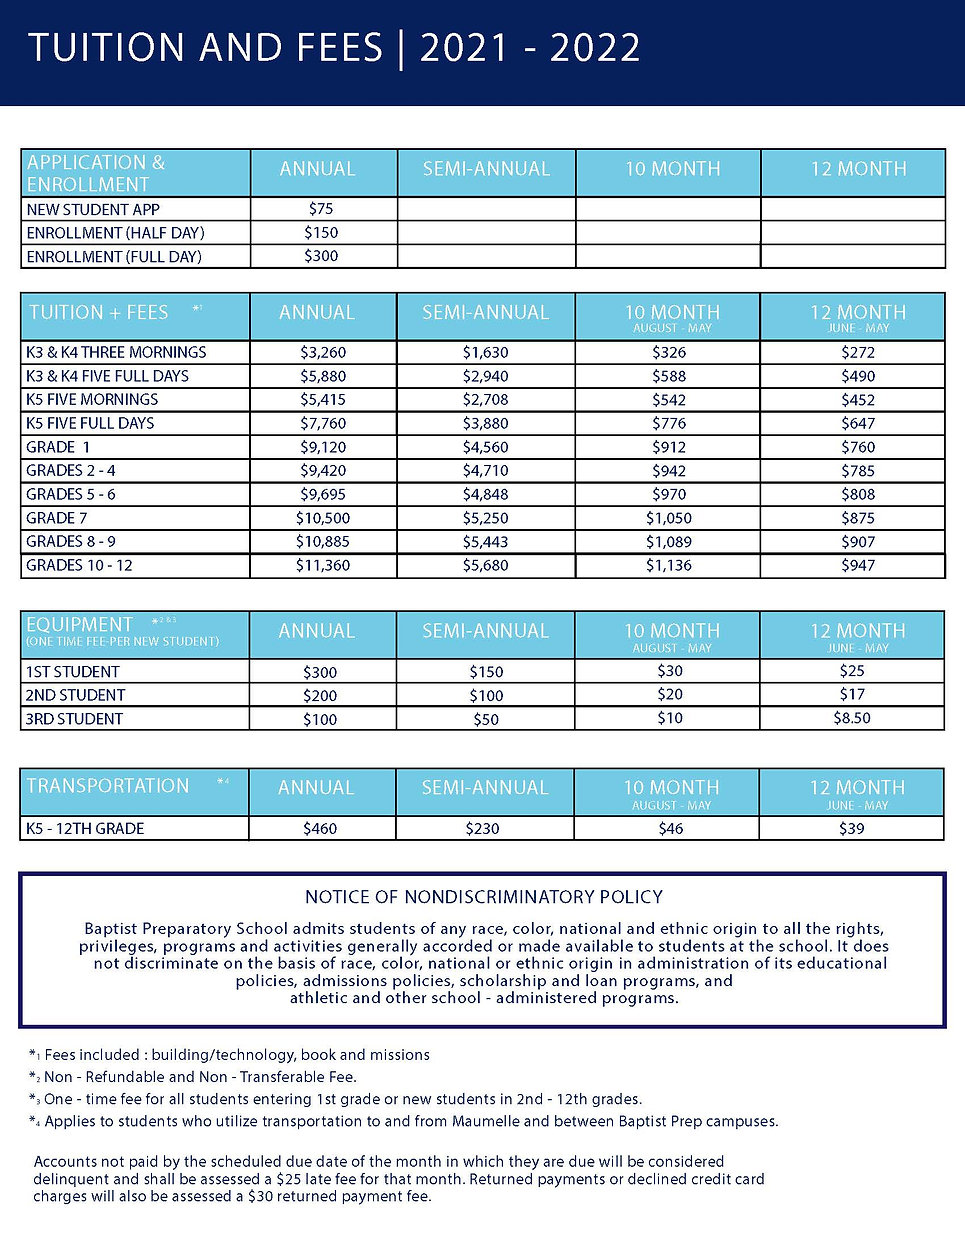 Tuition and Fees Schedule 2021-2022_Page